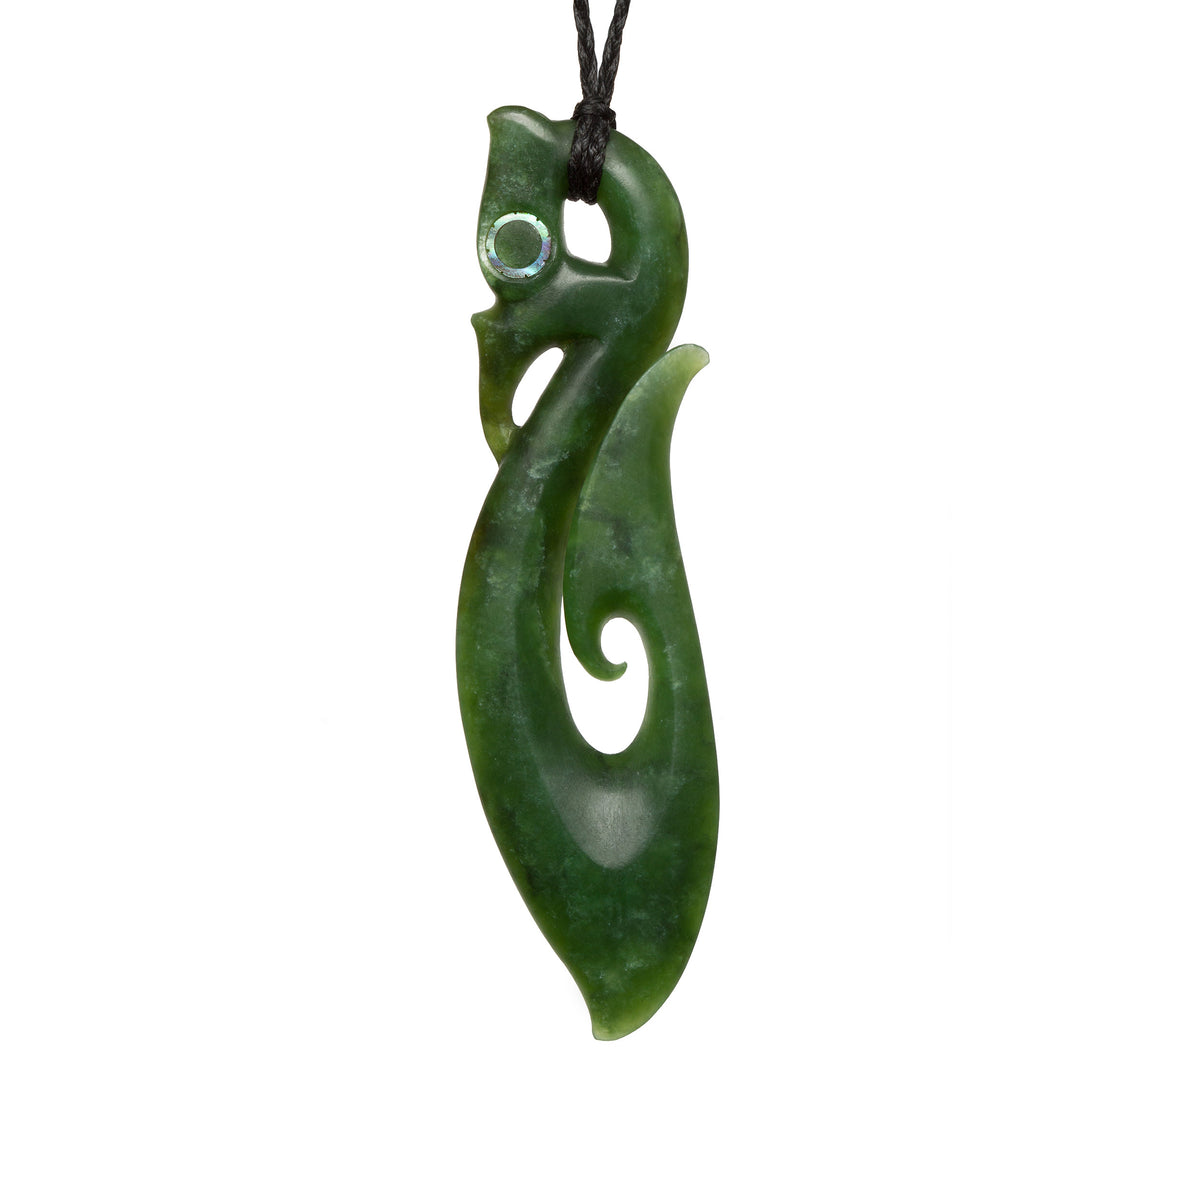 87mm x 22mm / New Zealand Pounamu // AKAMA698P-1